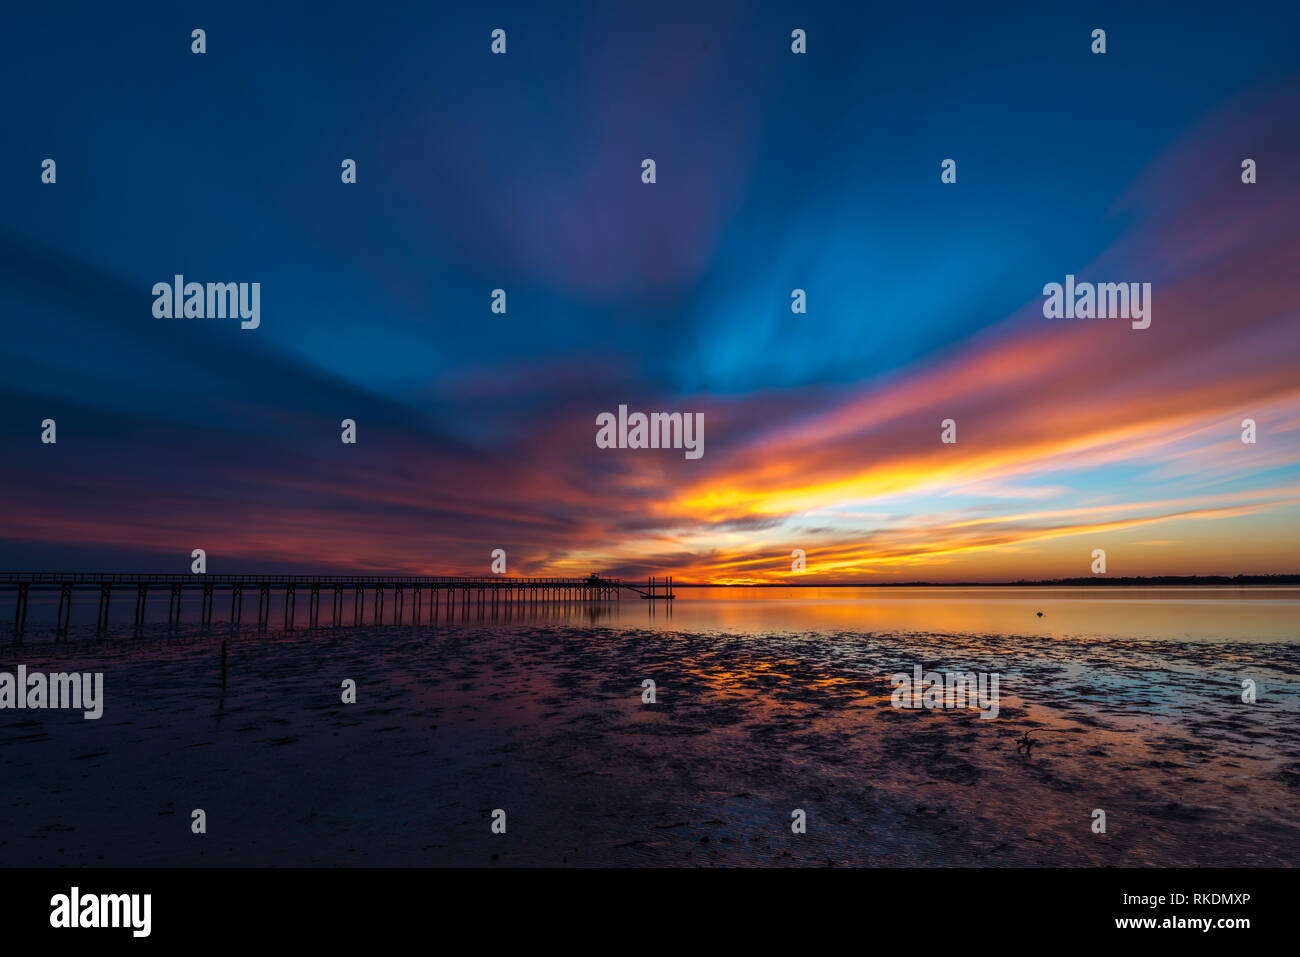 Sunset at Fort Freemont Reach - Stock Image